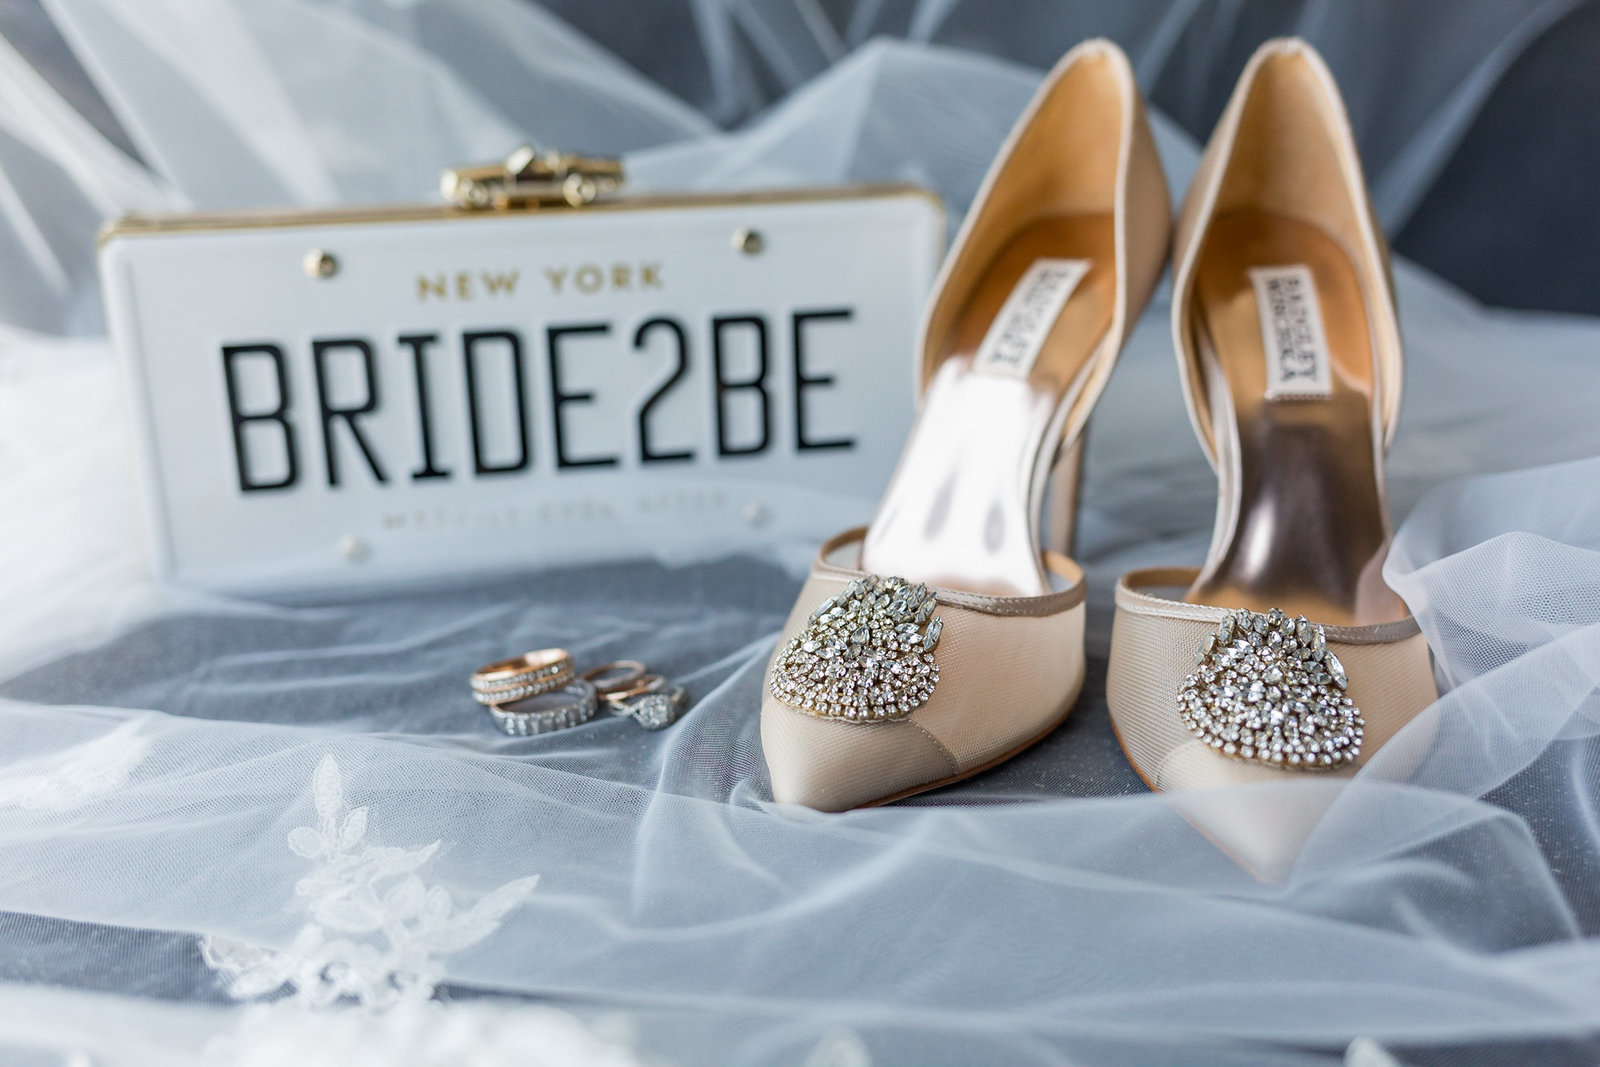 Kate Spade Wedding Purse - Bride 2 Be - Mecca Gamble Photography - Atlanta Weddings